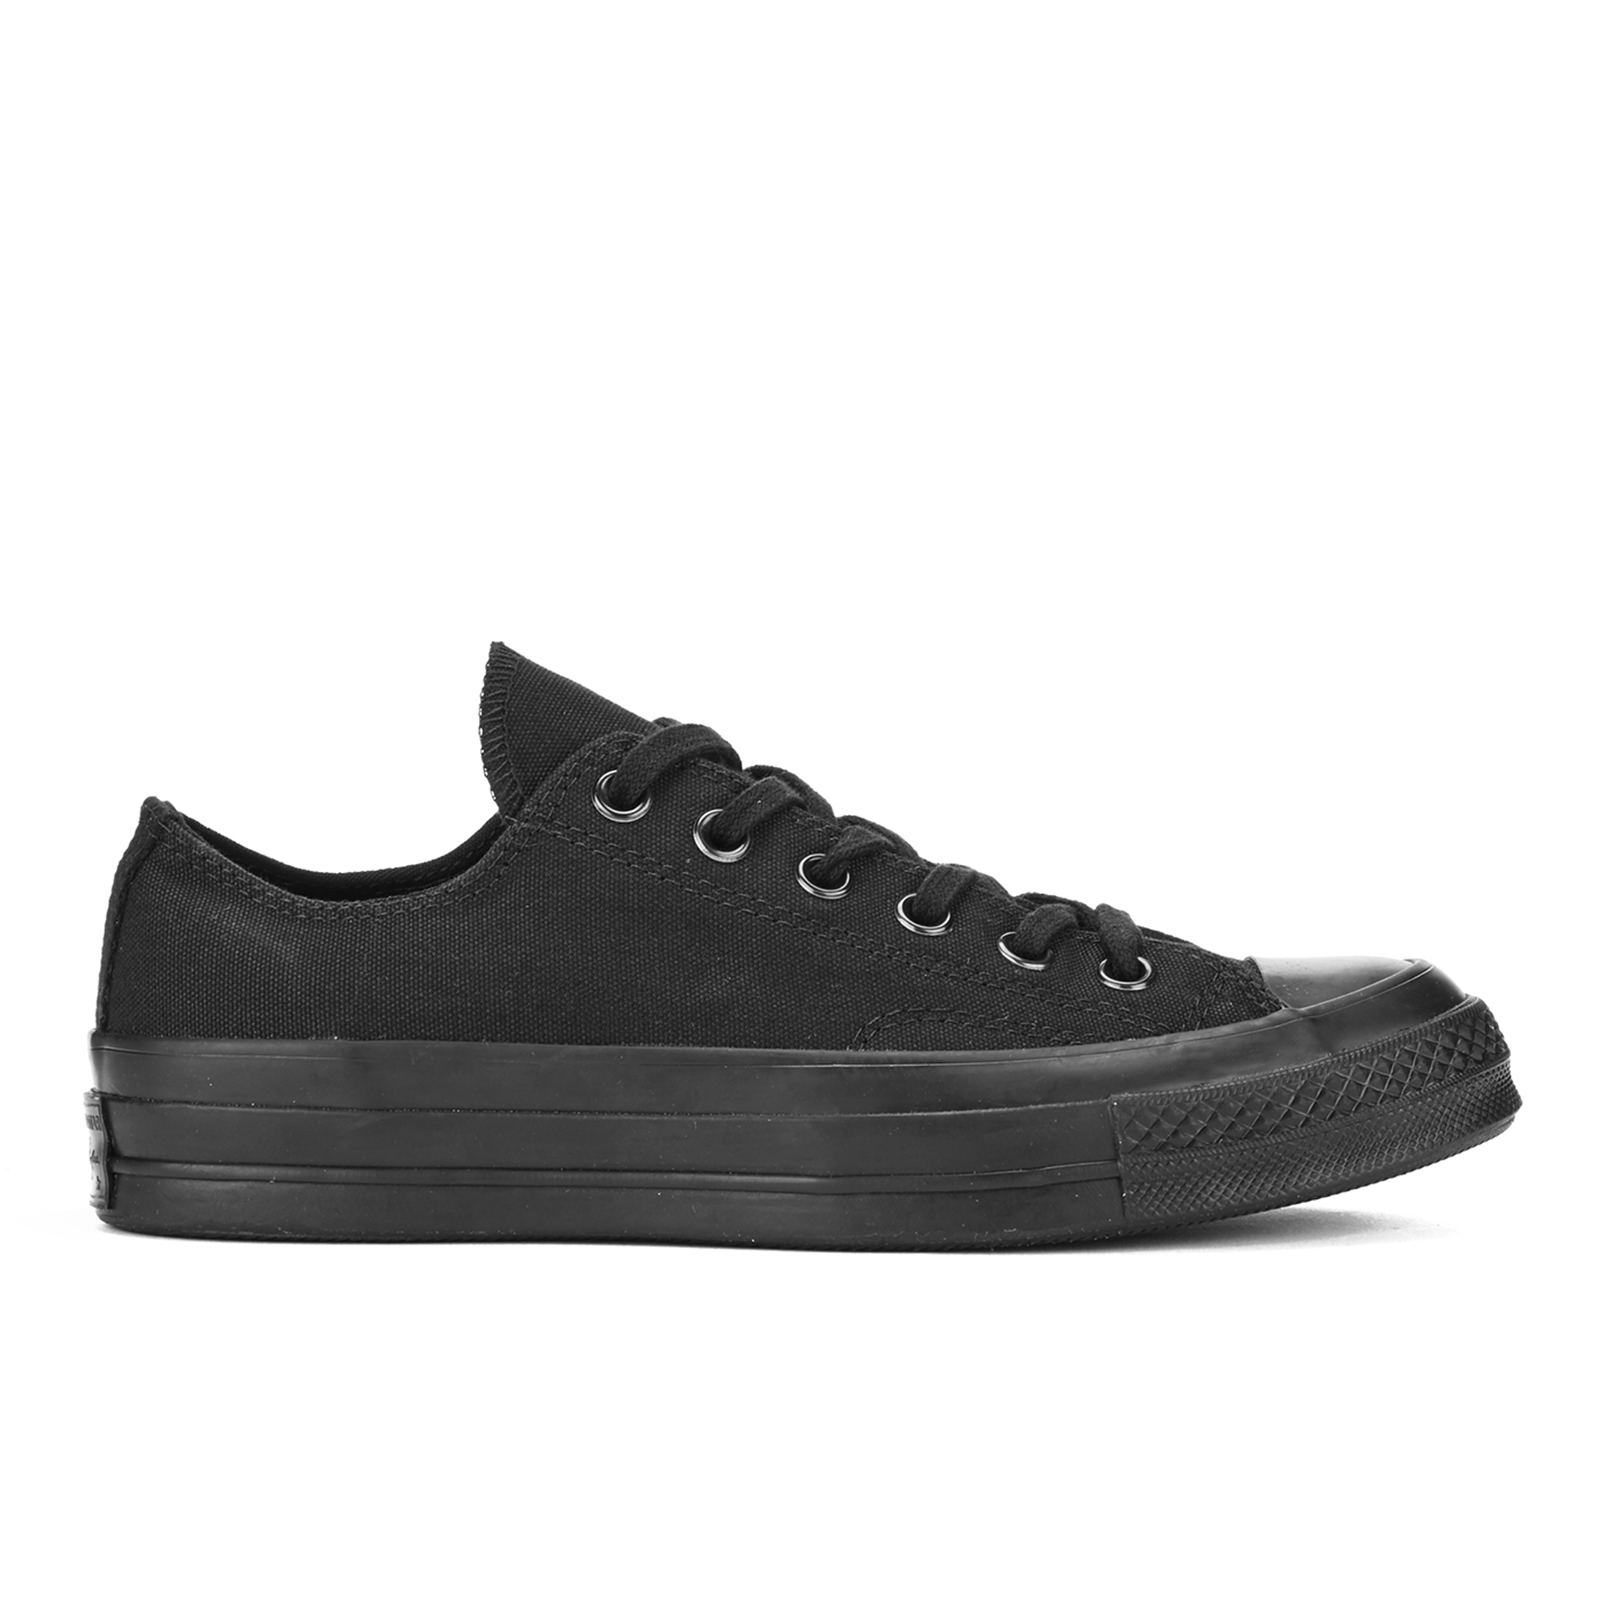 Converse Chuck Taylor All Star  70 Vintage Canvas Low Top Trainers - Black  Monochrome - Free UK Delivery over £50 276e22841